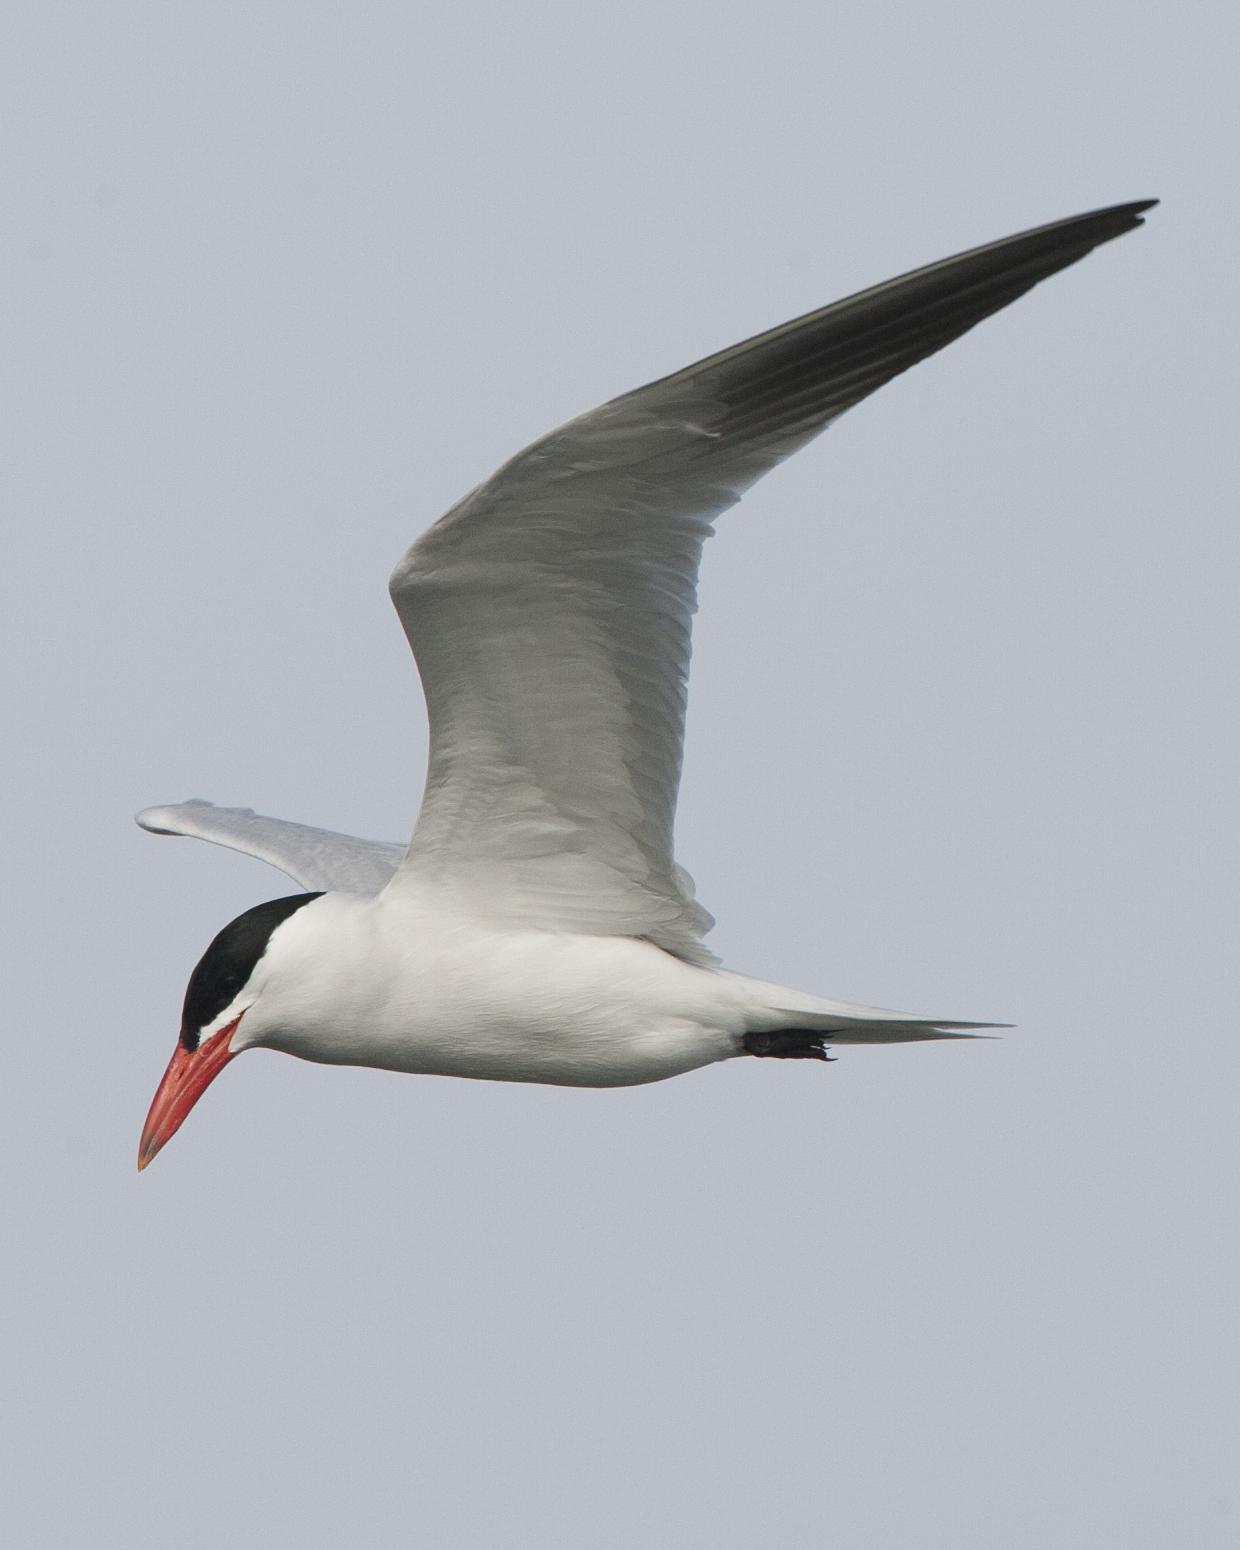 Caspian Tern Photo by Jeff Moore